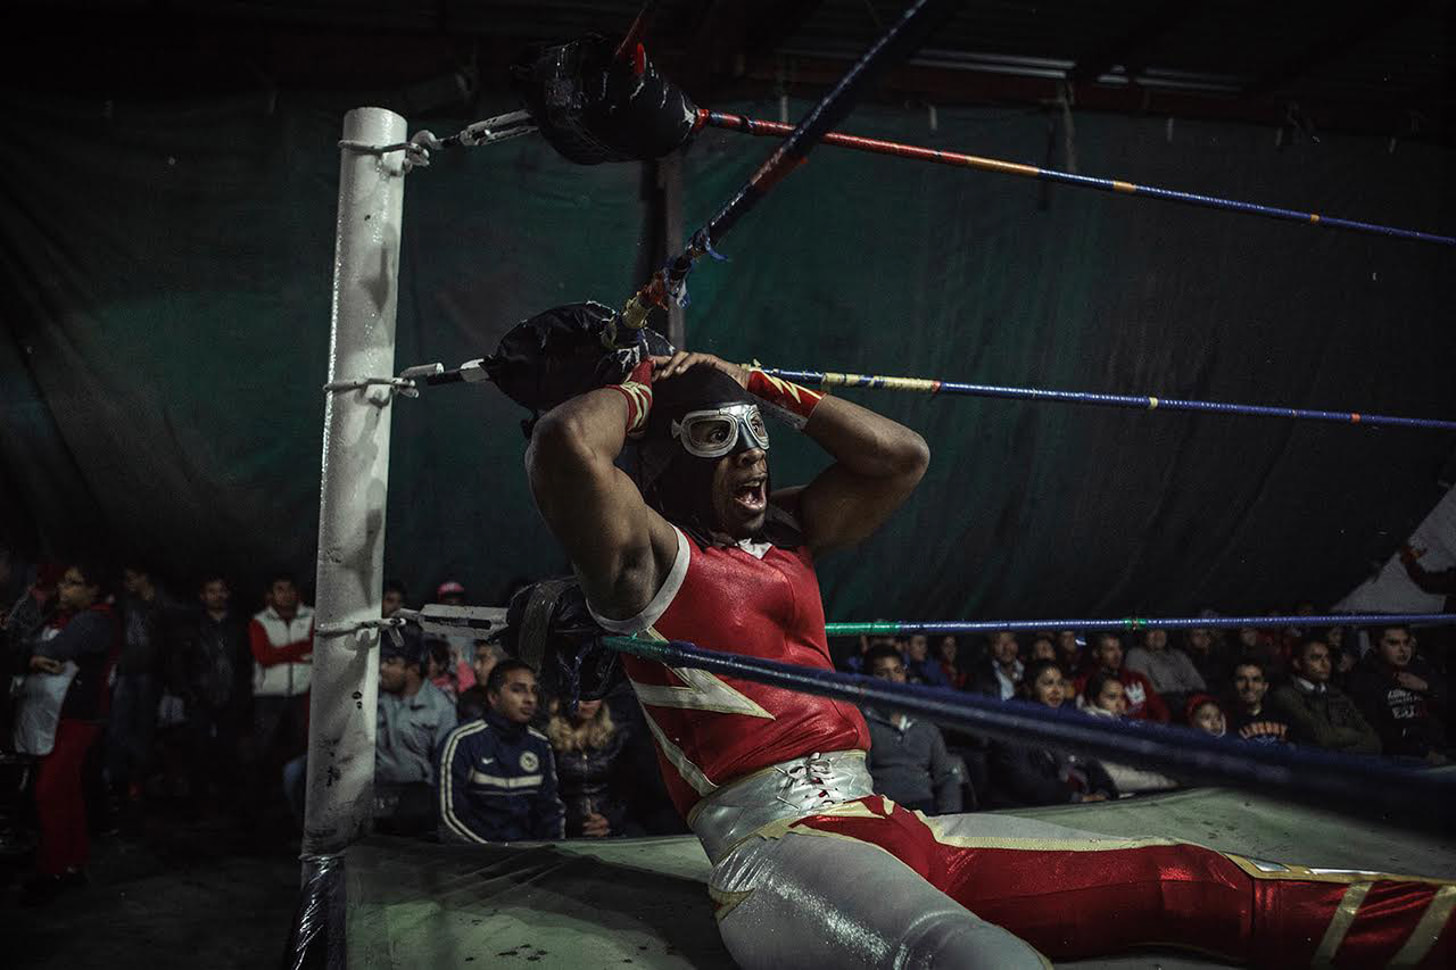 Lucha extrema, por Annick Donkers